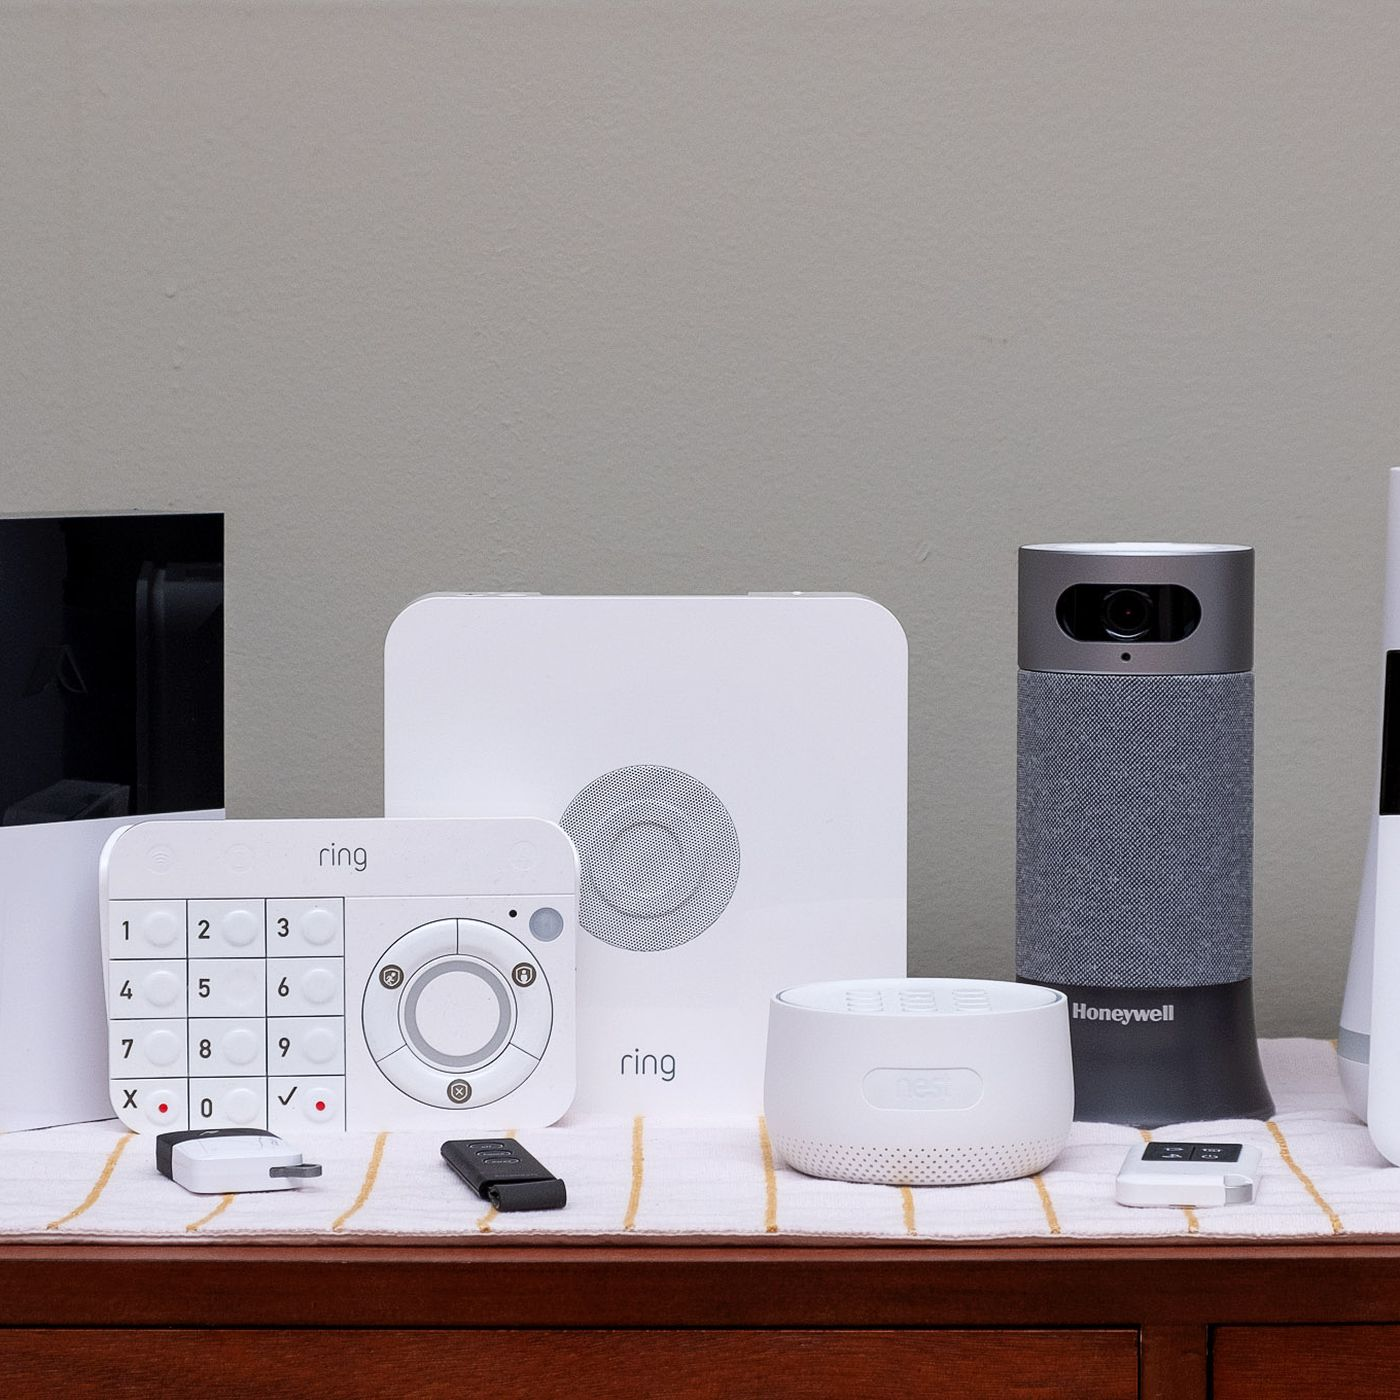 The Best Home Security System You Can Install Yourself Verge